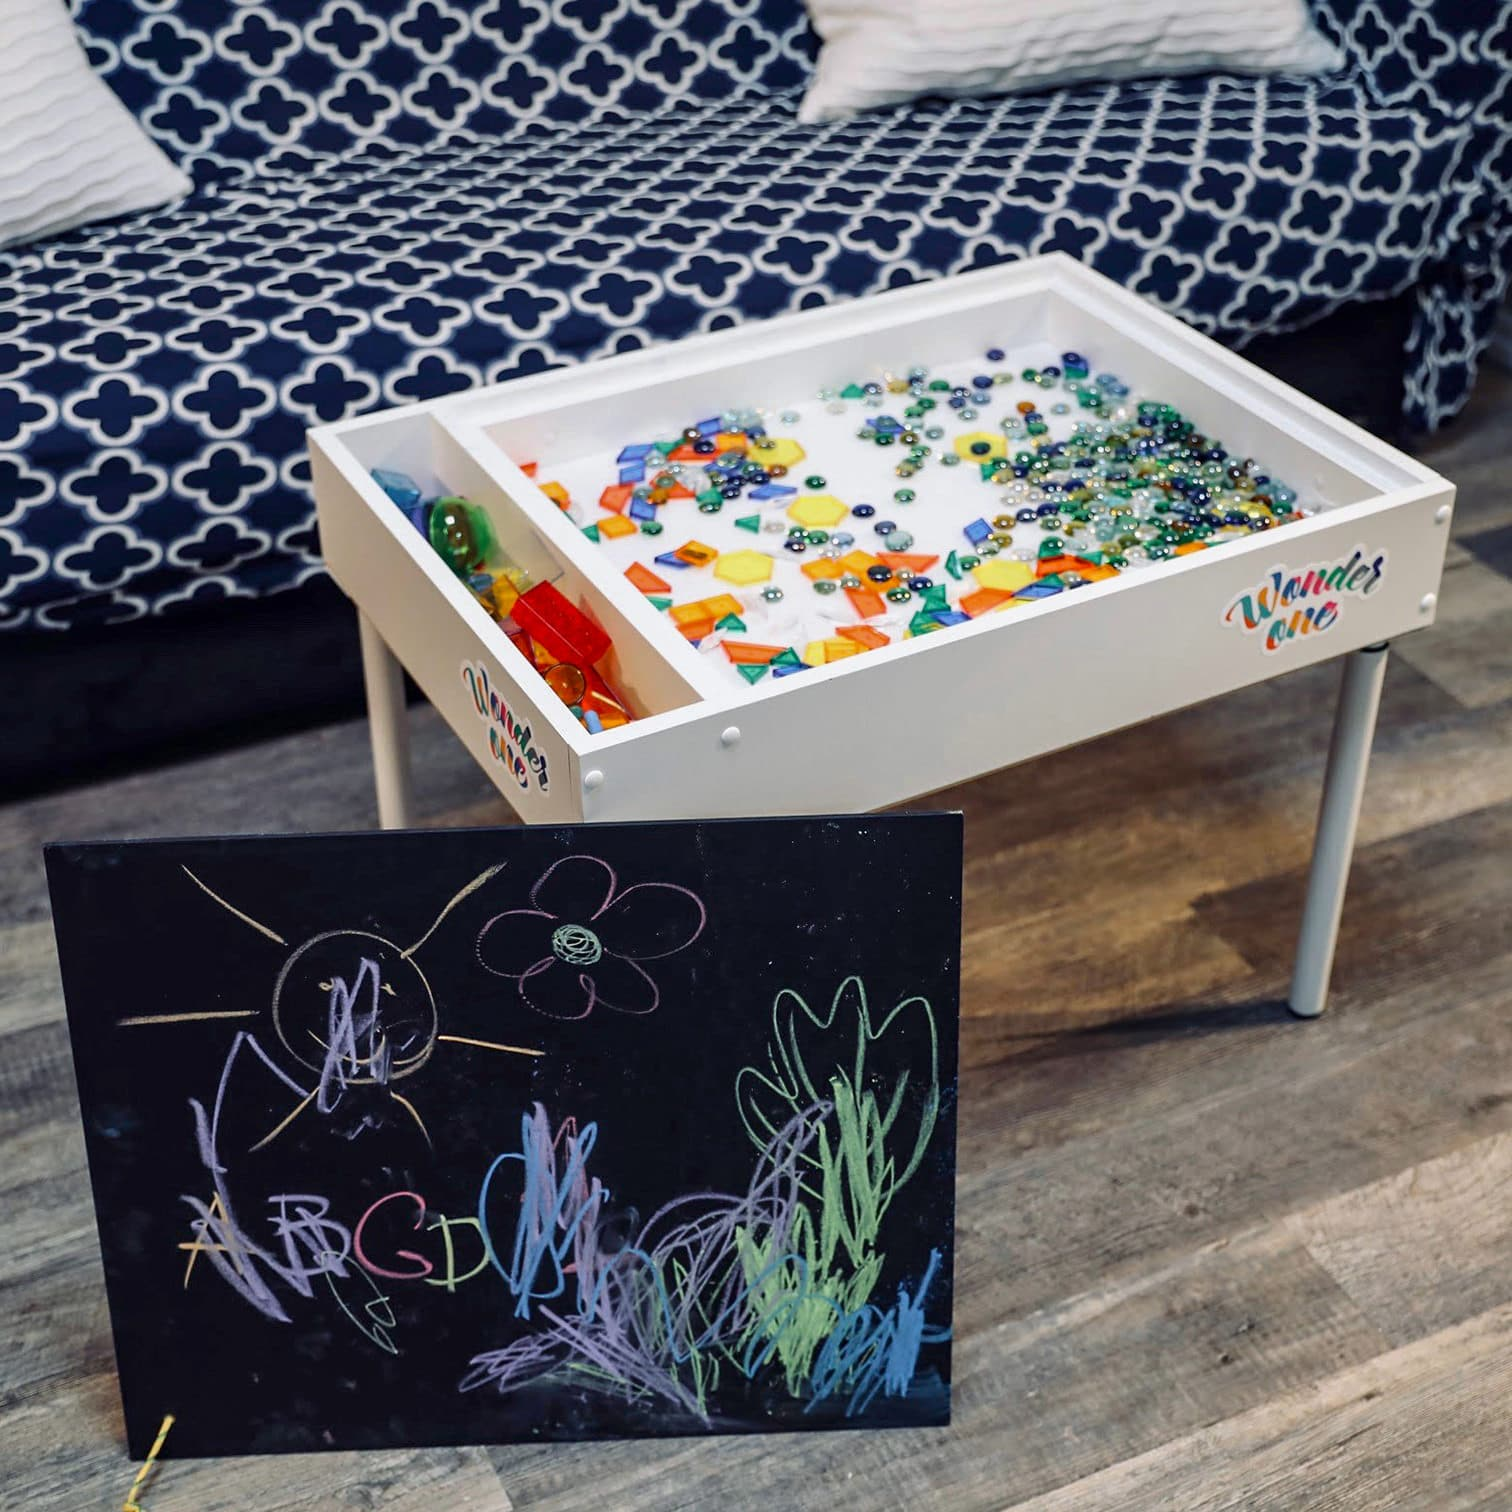 Prime Std Light And Sensory Table Desk For Children Wonder One Download Free Architecture Designs Scobabritishbridgeorg